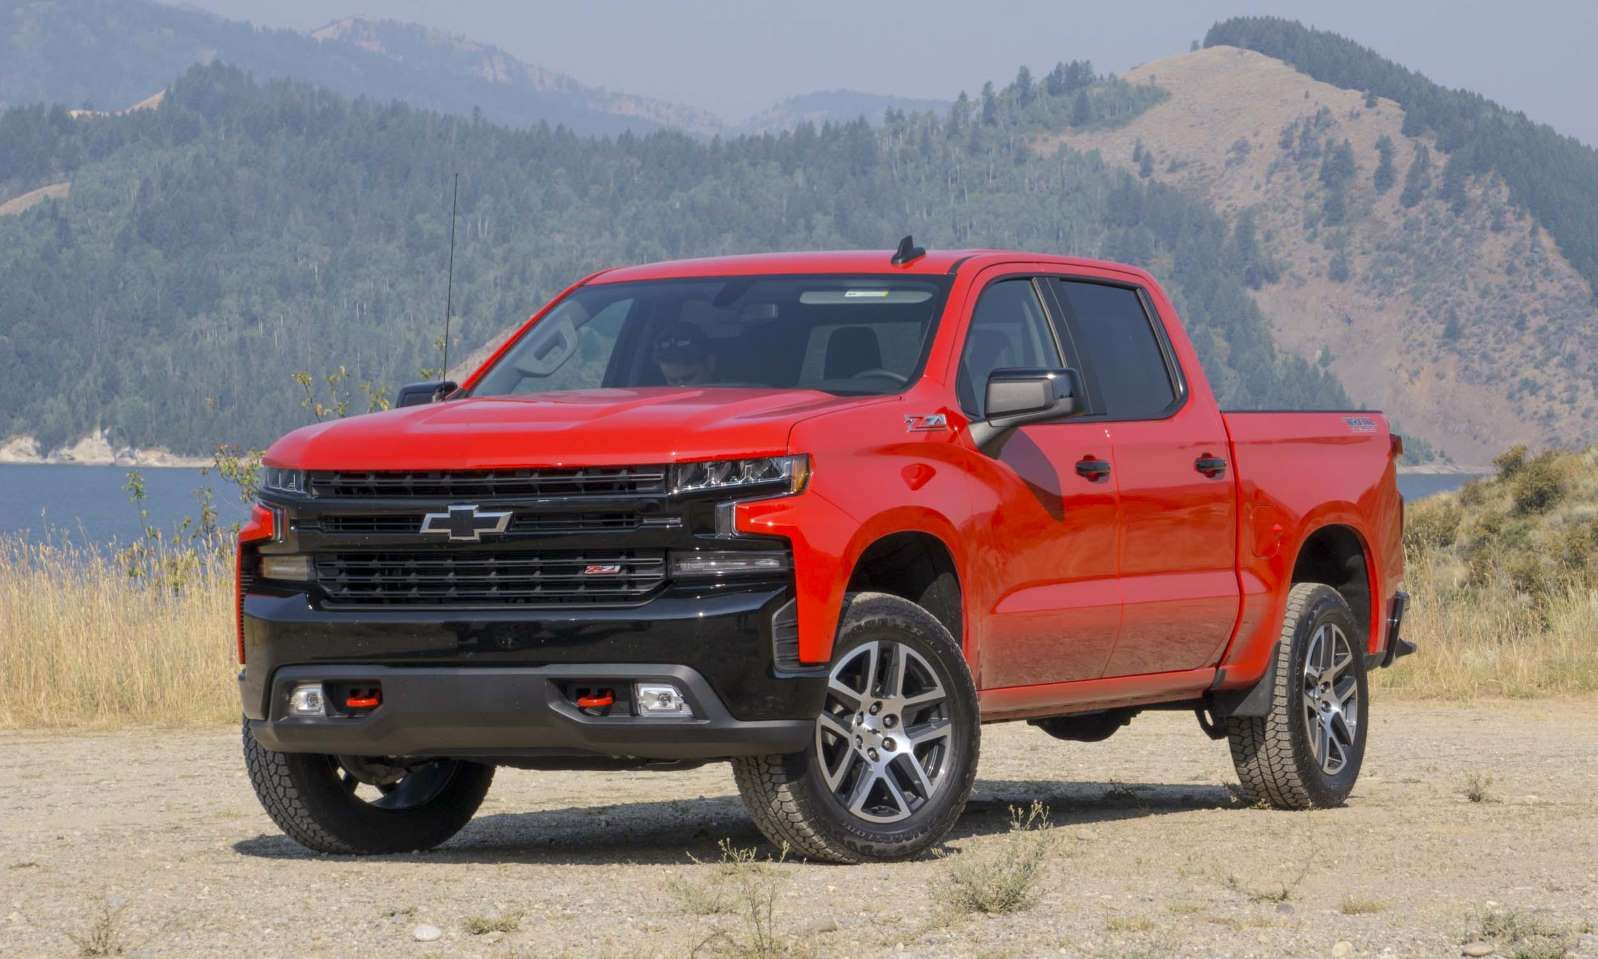 2019 Chevy Silverado A Red And Black Truck Parked In Front Of A Mountain C Perry Stern Automotive Content Experience Chevrolet Silverado Chevy Chevy Trucks